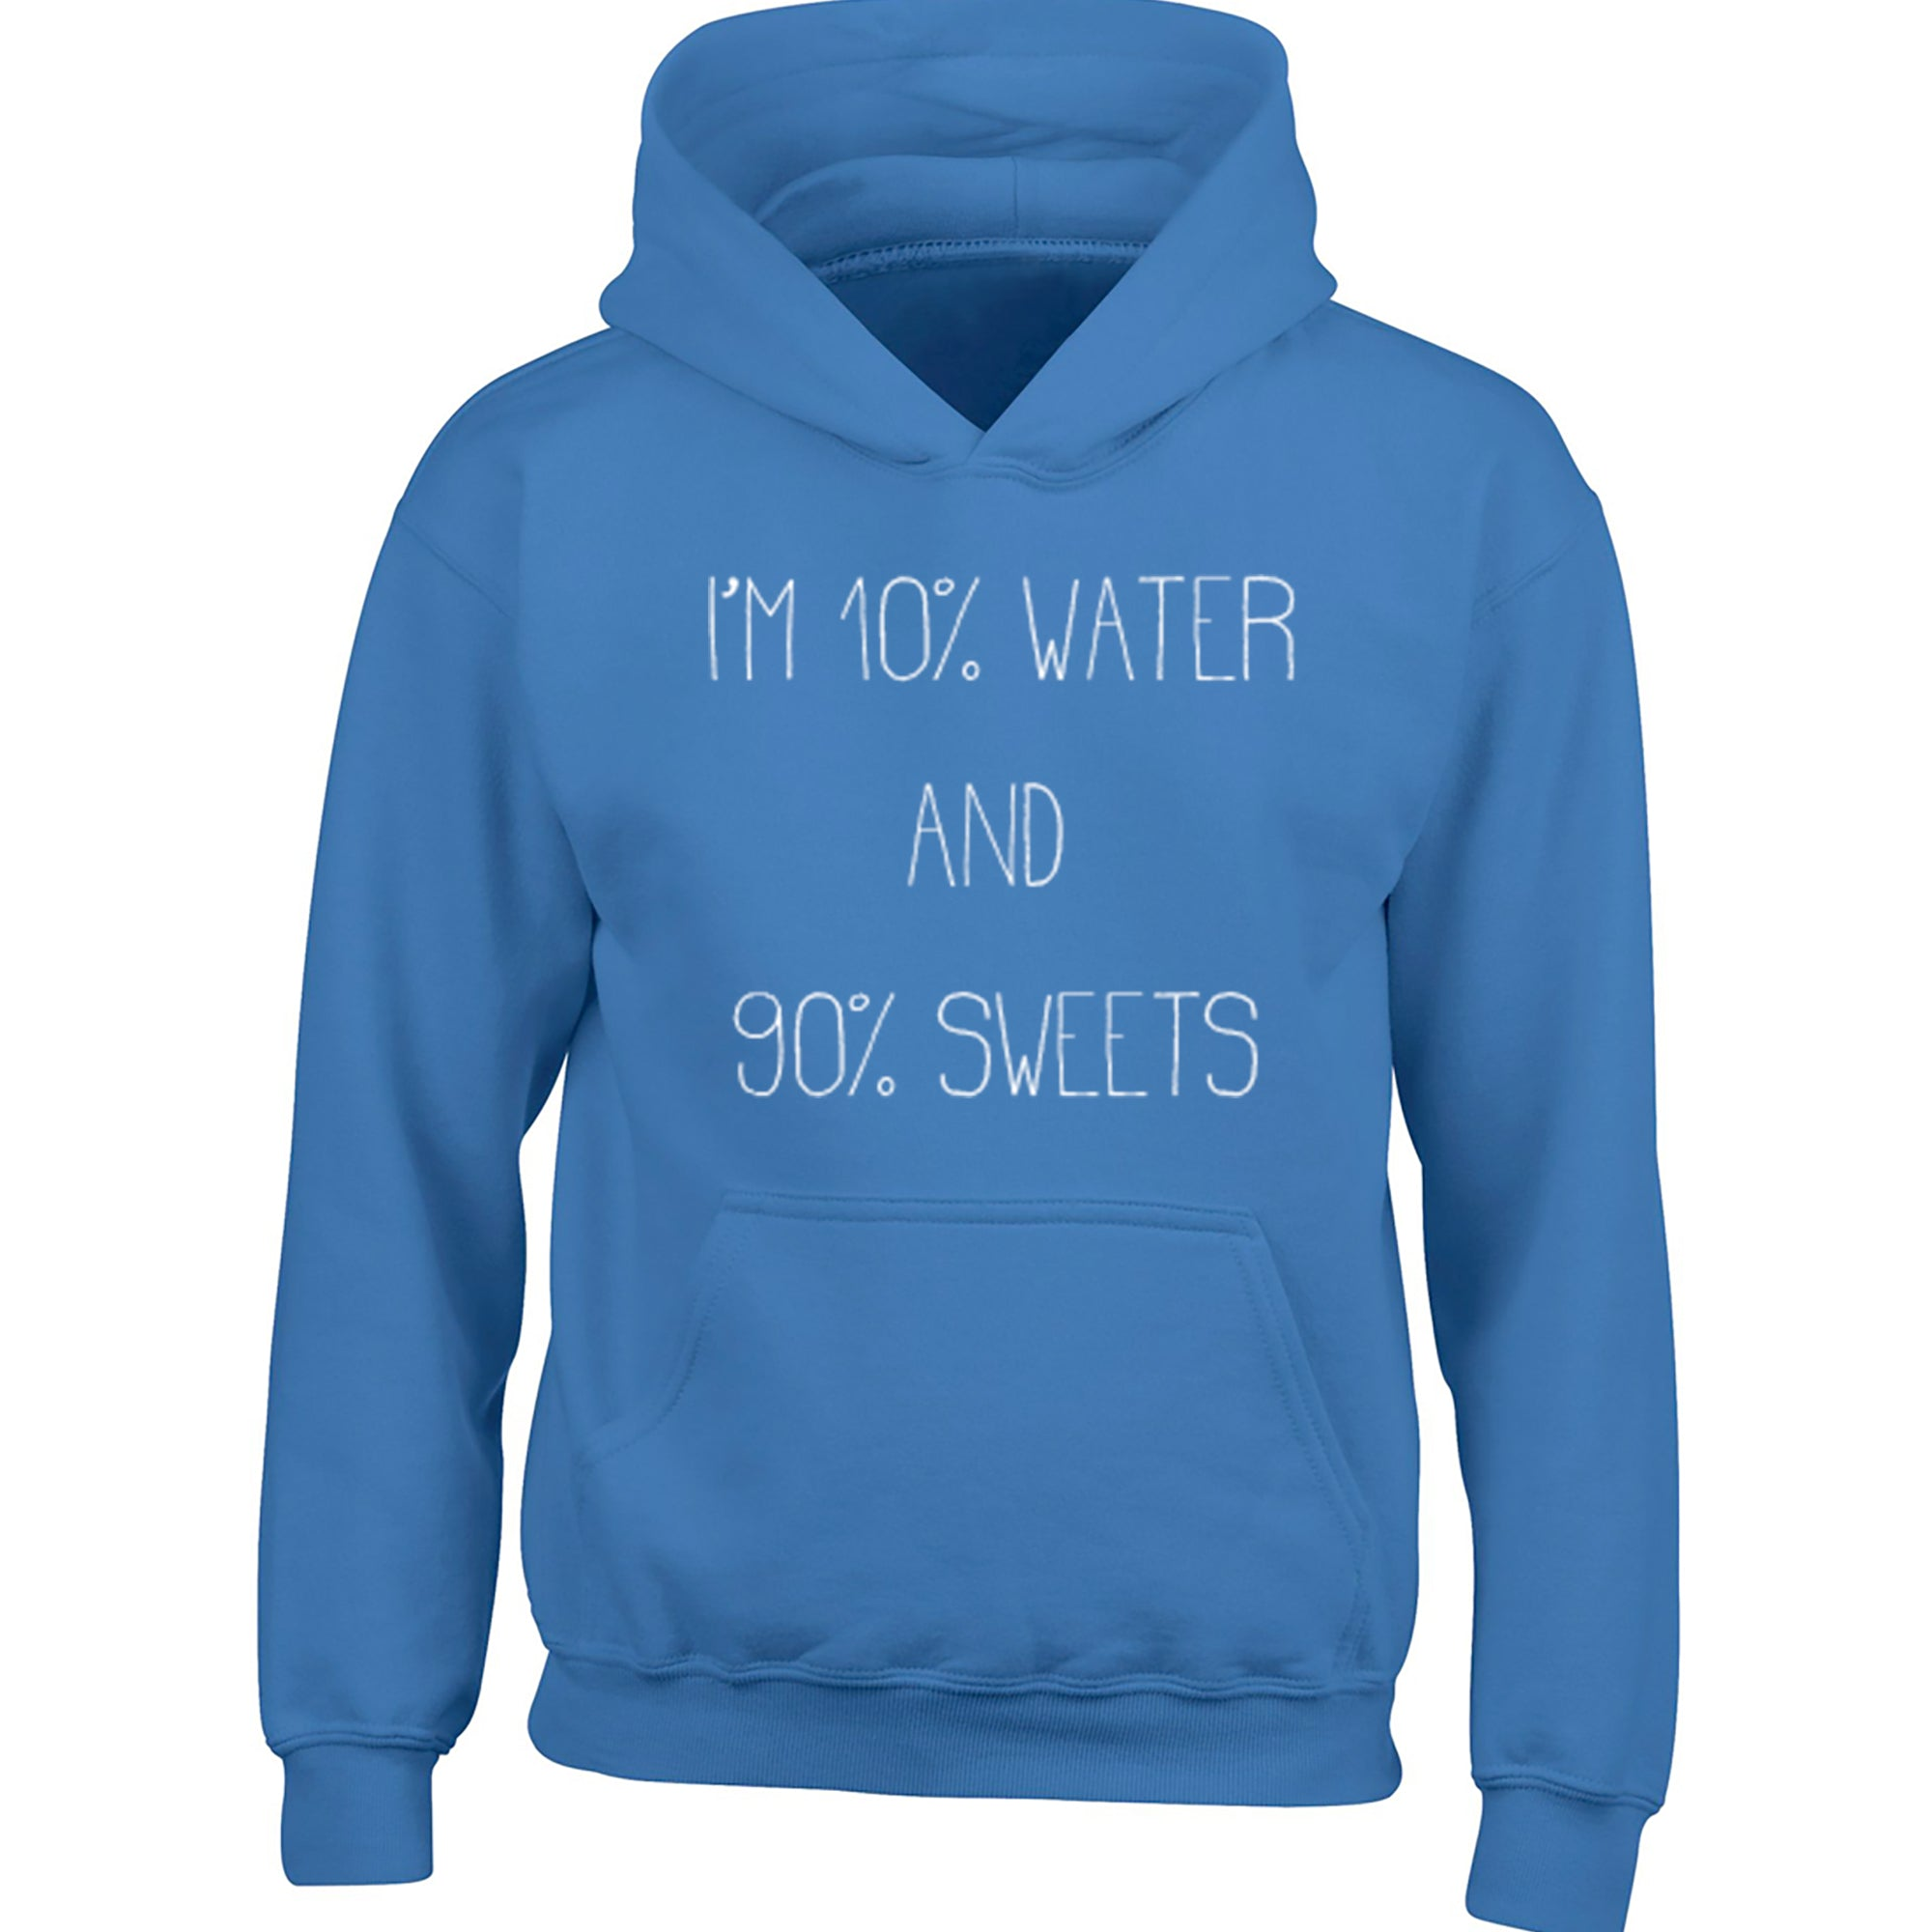 I'm 10% Water And 90% Sweets Childrens Ages 3/4-12/14 Unisex Hoodie S0486 - Illustrated Identity Ltd.